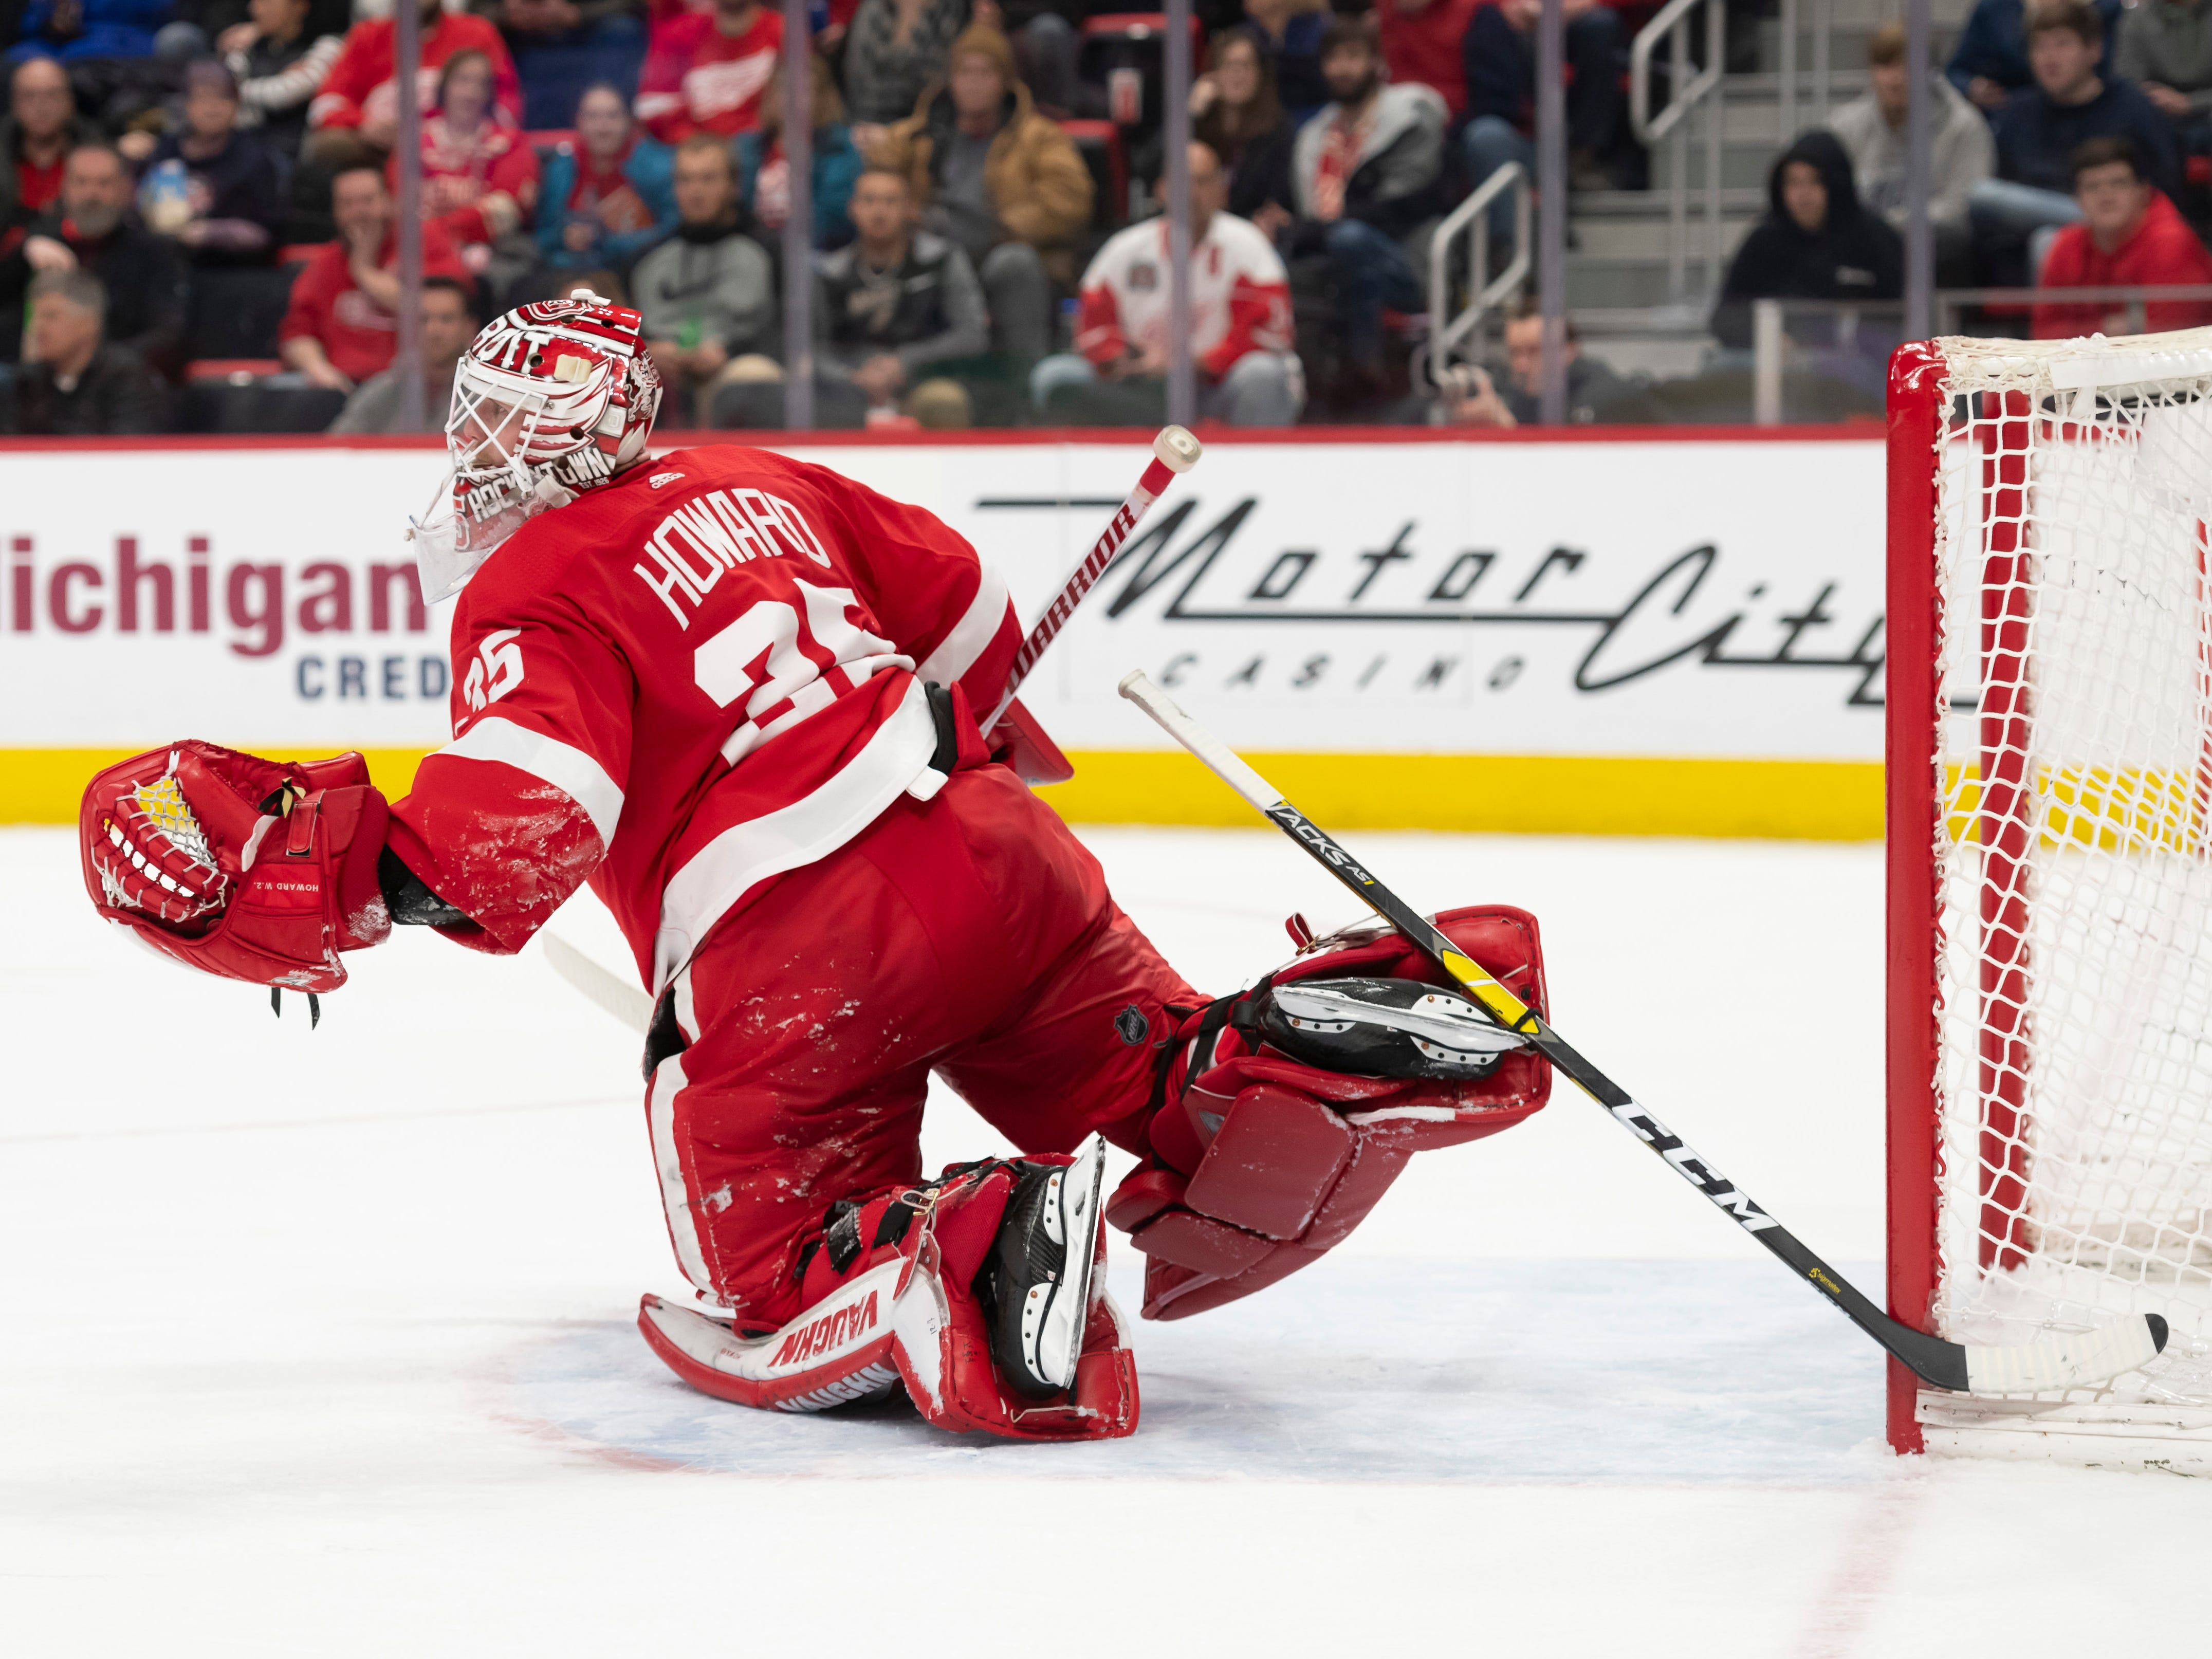 A stick belonging to Anaheim center Brian Gibbons ended up stuck in the skate of Detroit goaltender Jimmy Howard in the second period.